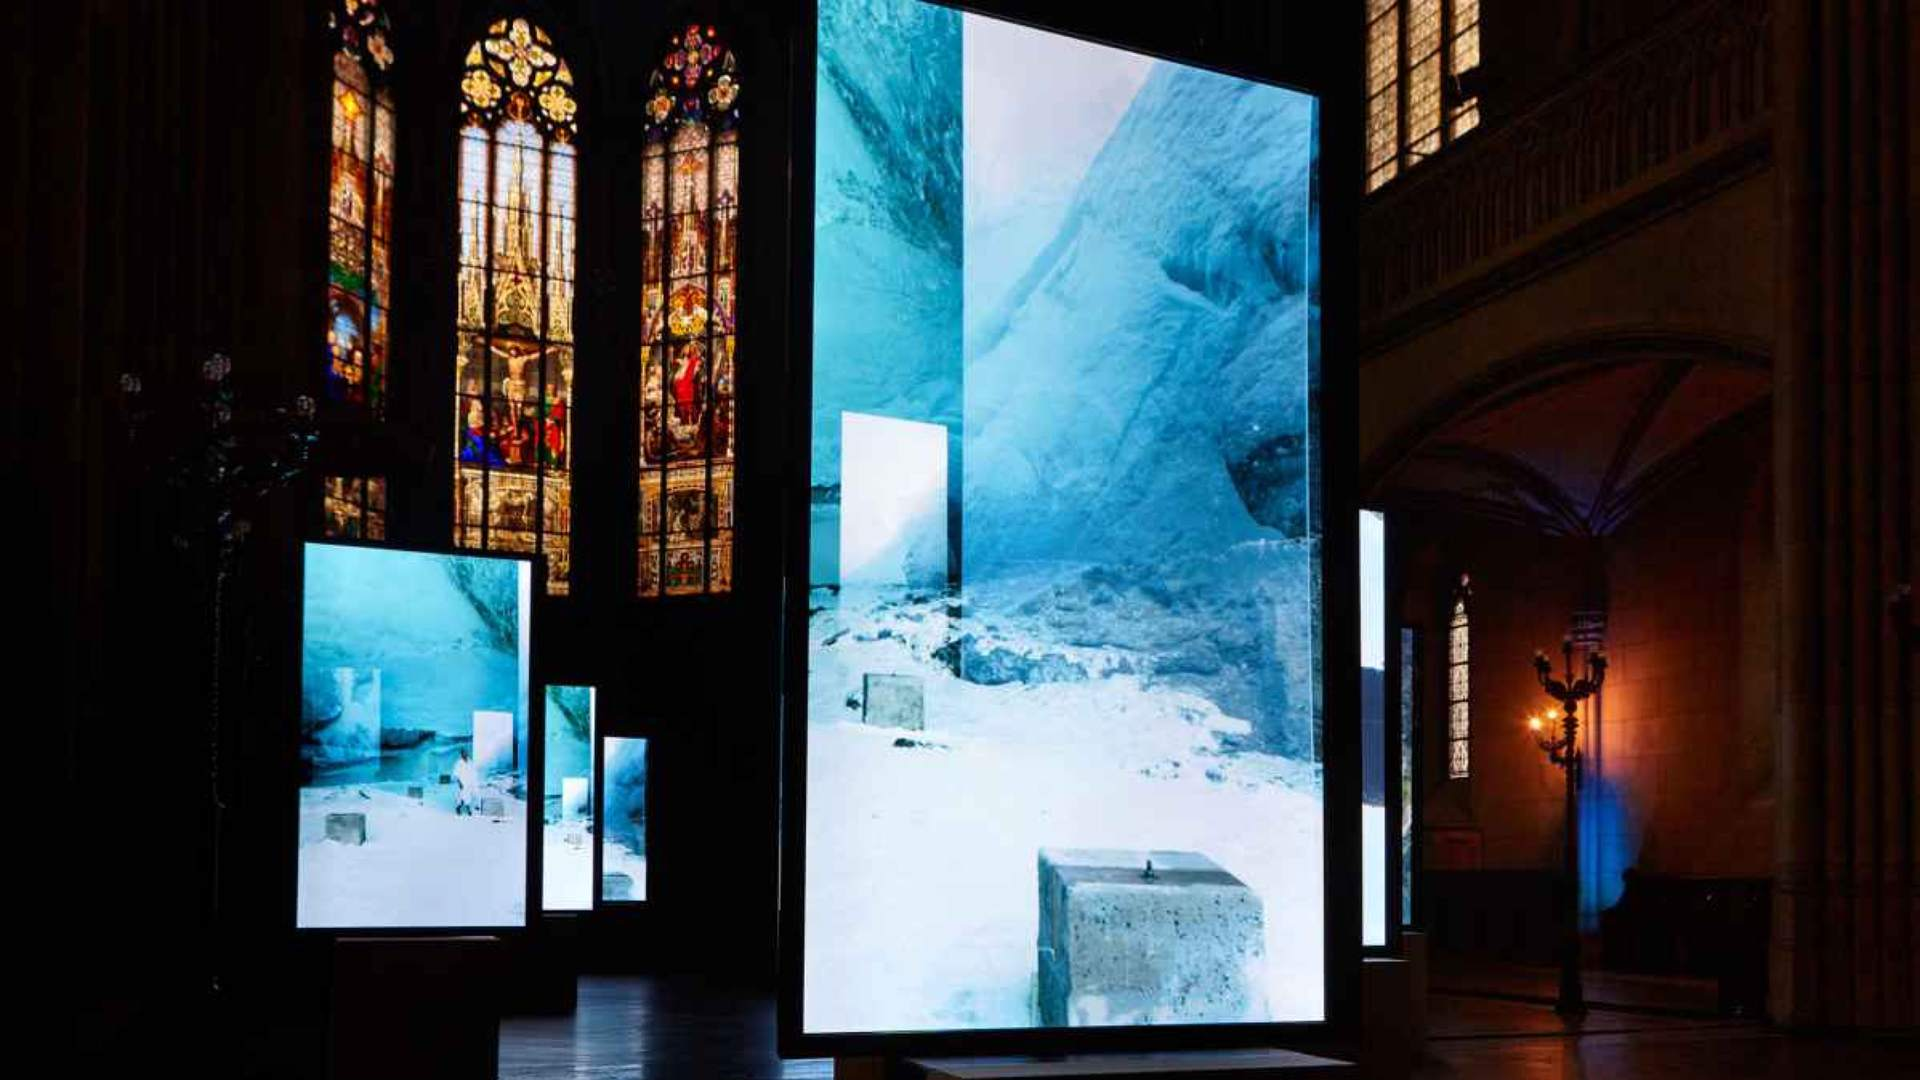 One of the pieces of artwork from Isaac Julien's work, Stones Against Diamonds at the Basel 2015 exhibition.